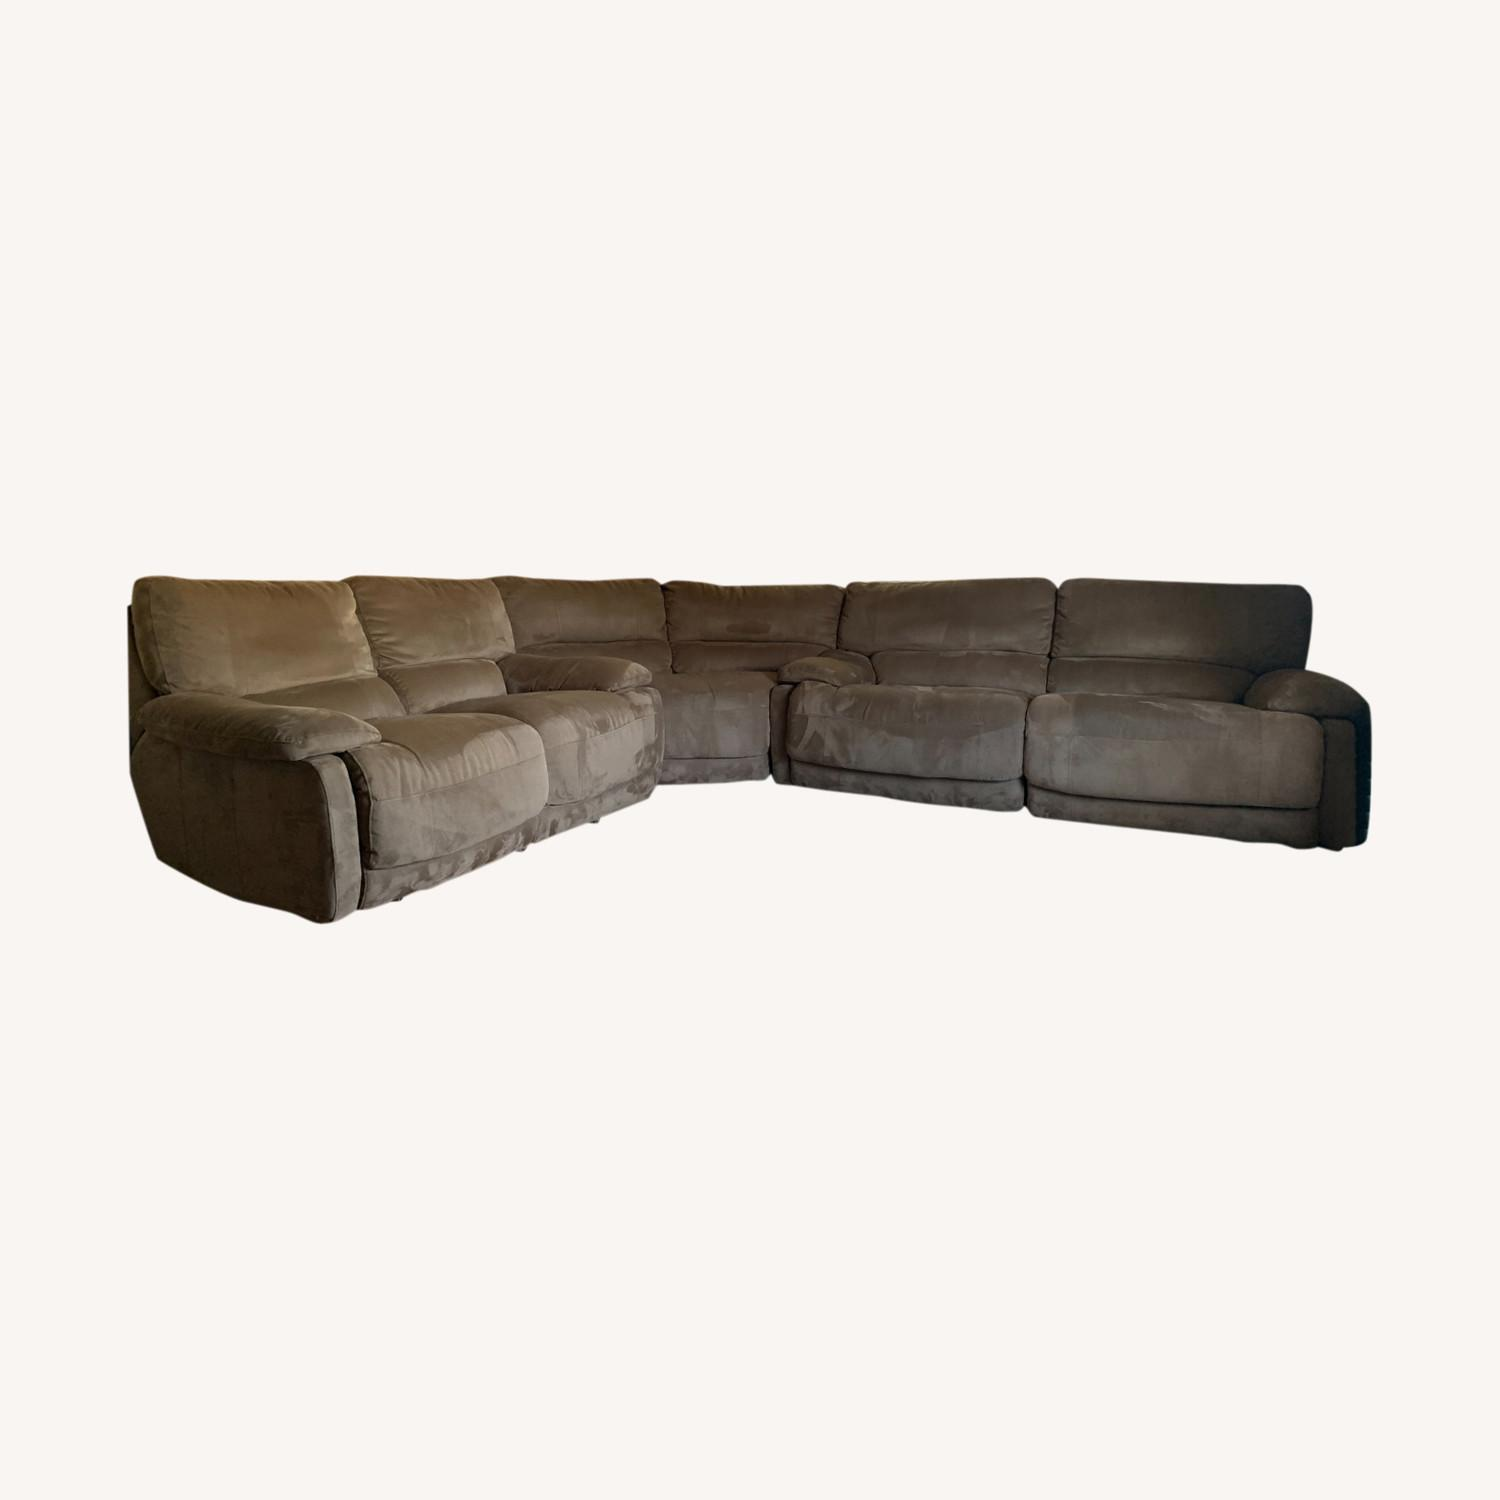 3 Piece Sectional Couch with Recliners - image-0